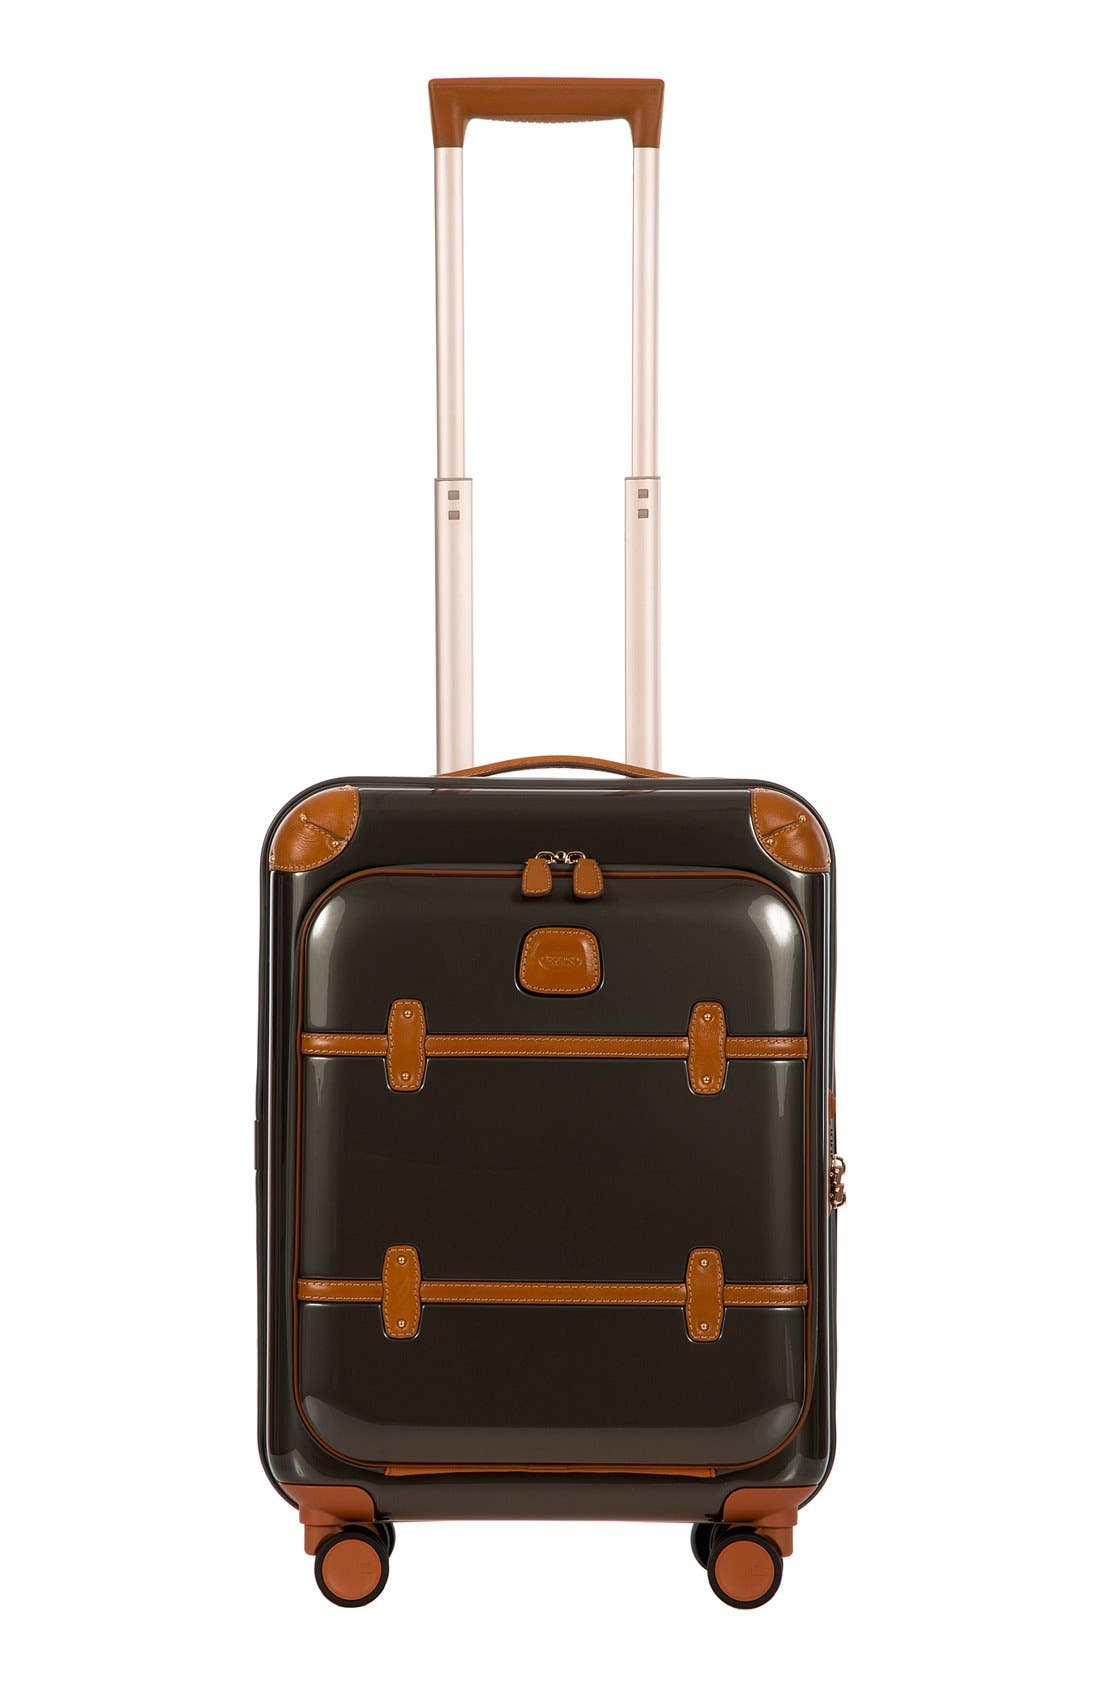 BRICS Bellagio 2.0 21-Inch Rolling Carry-On